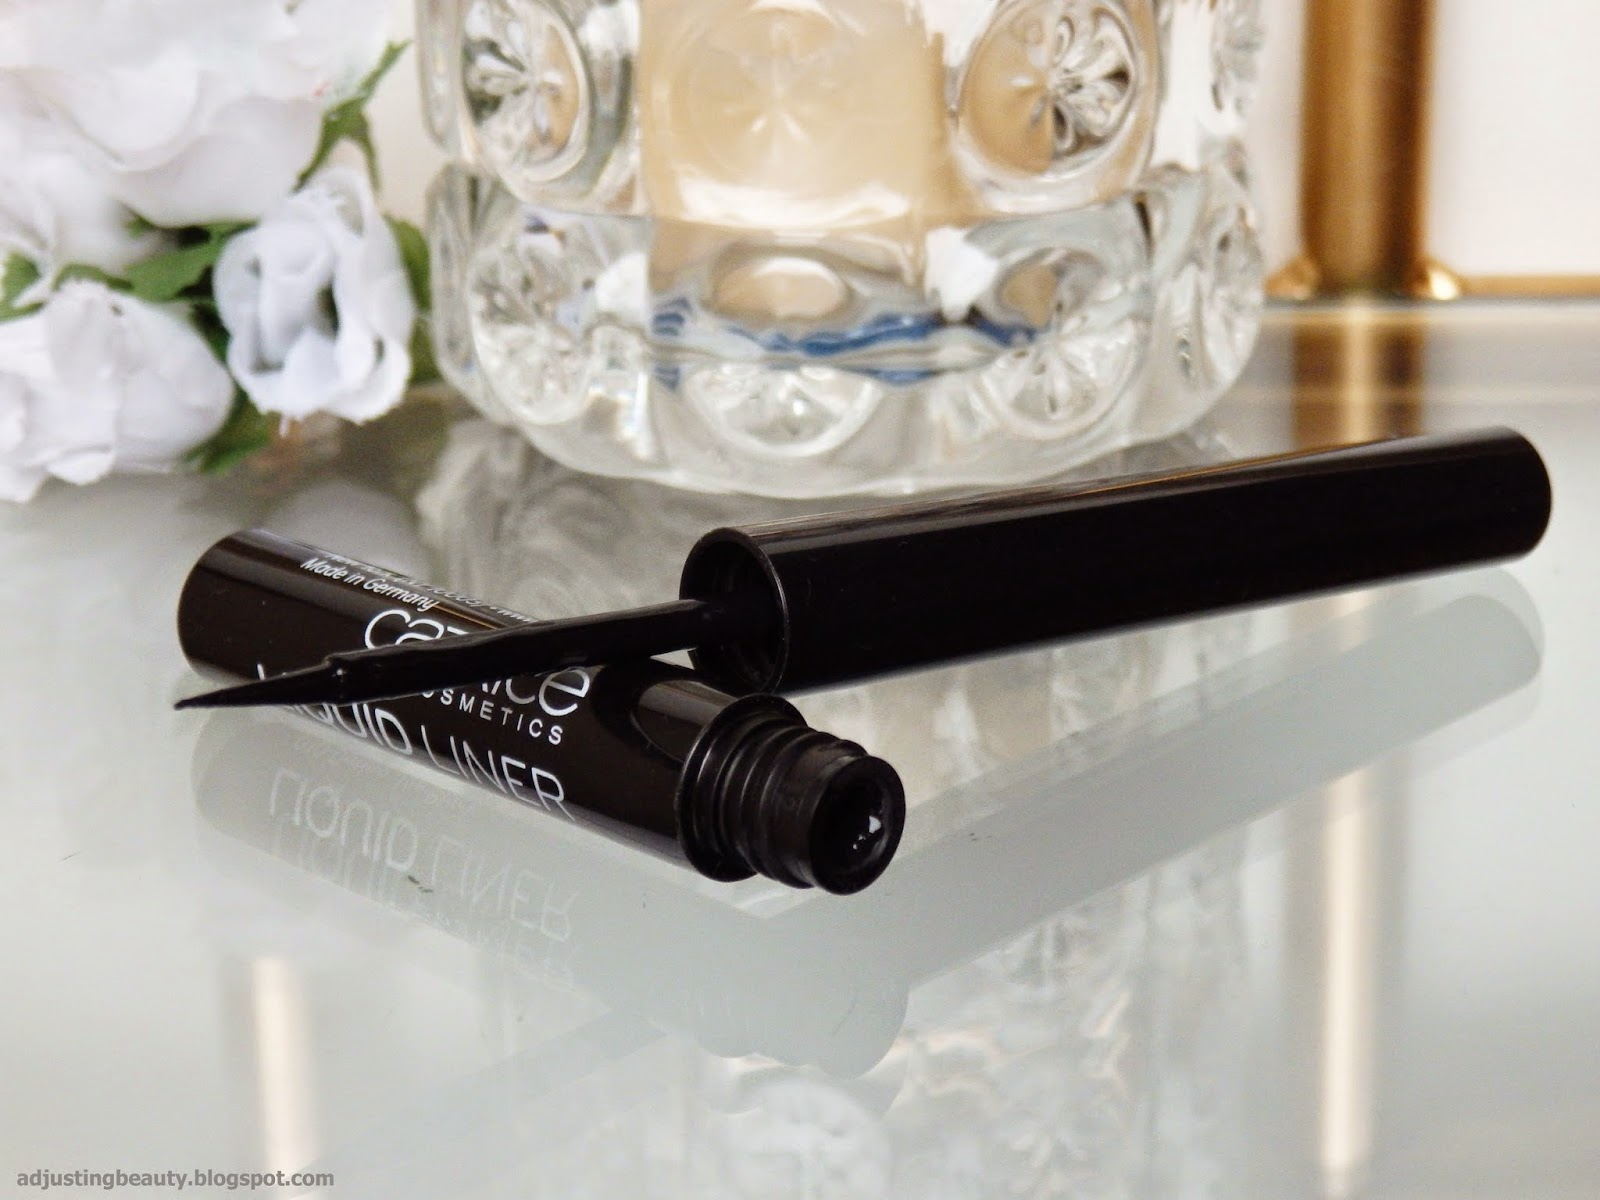 Results 1 - 35 of 35. Catrice eyeliner Liquid liner NEW Its Easy Black Lasts up to 24h Waterproof.